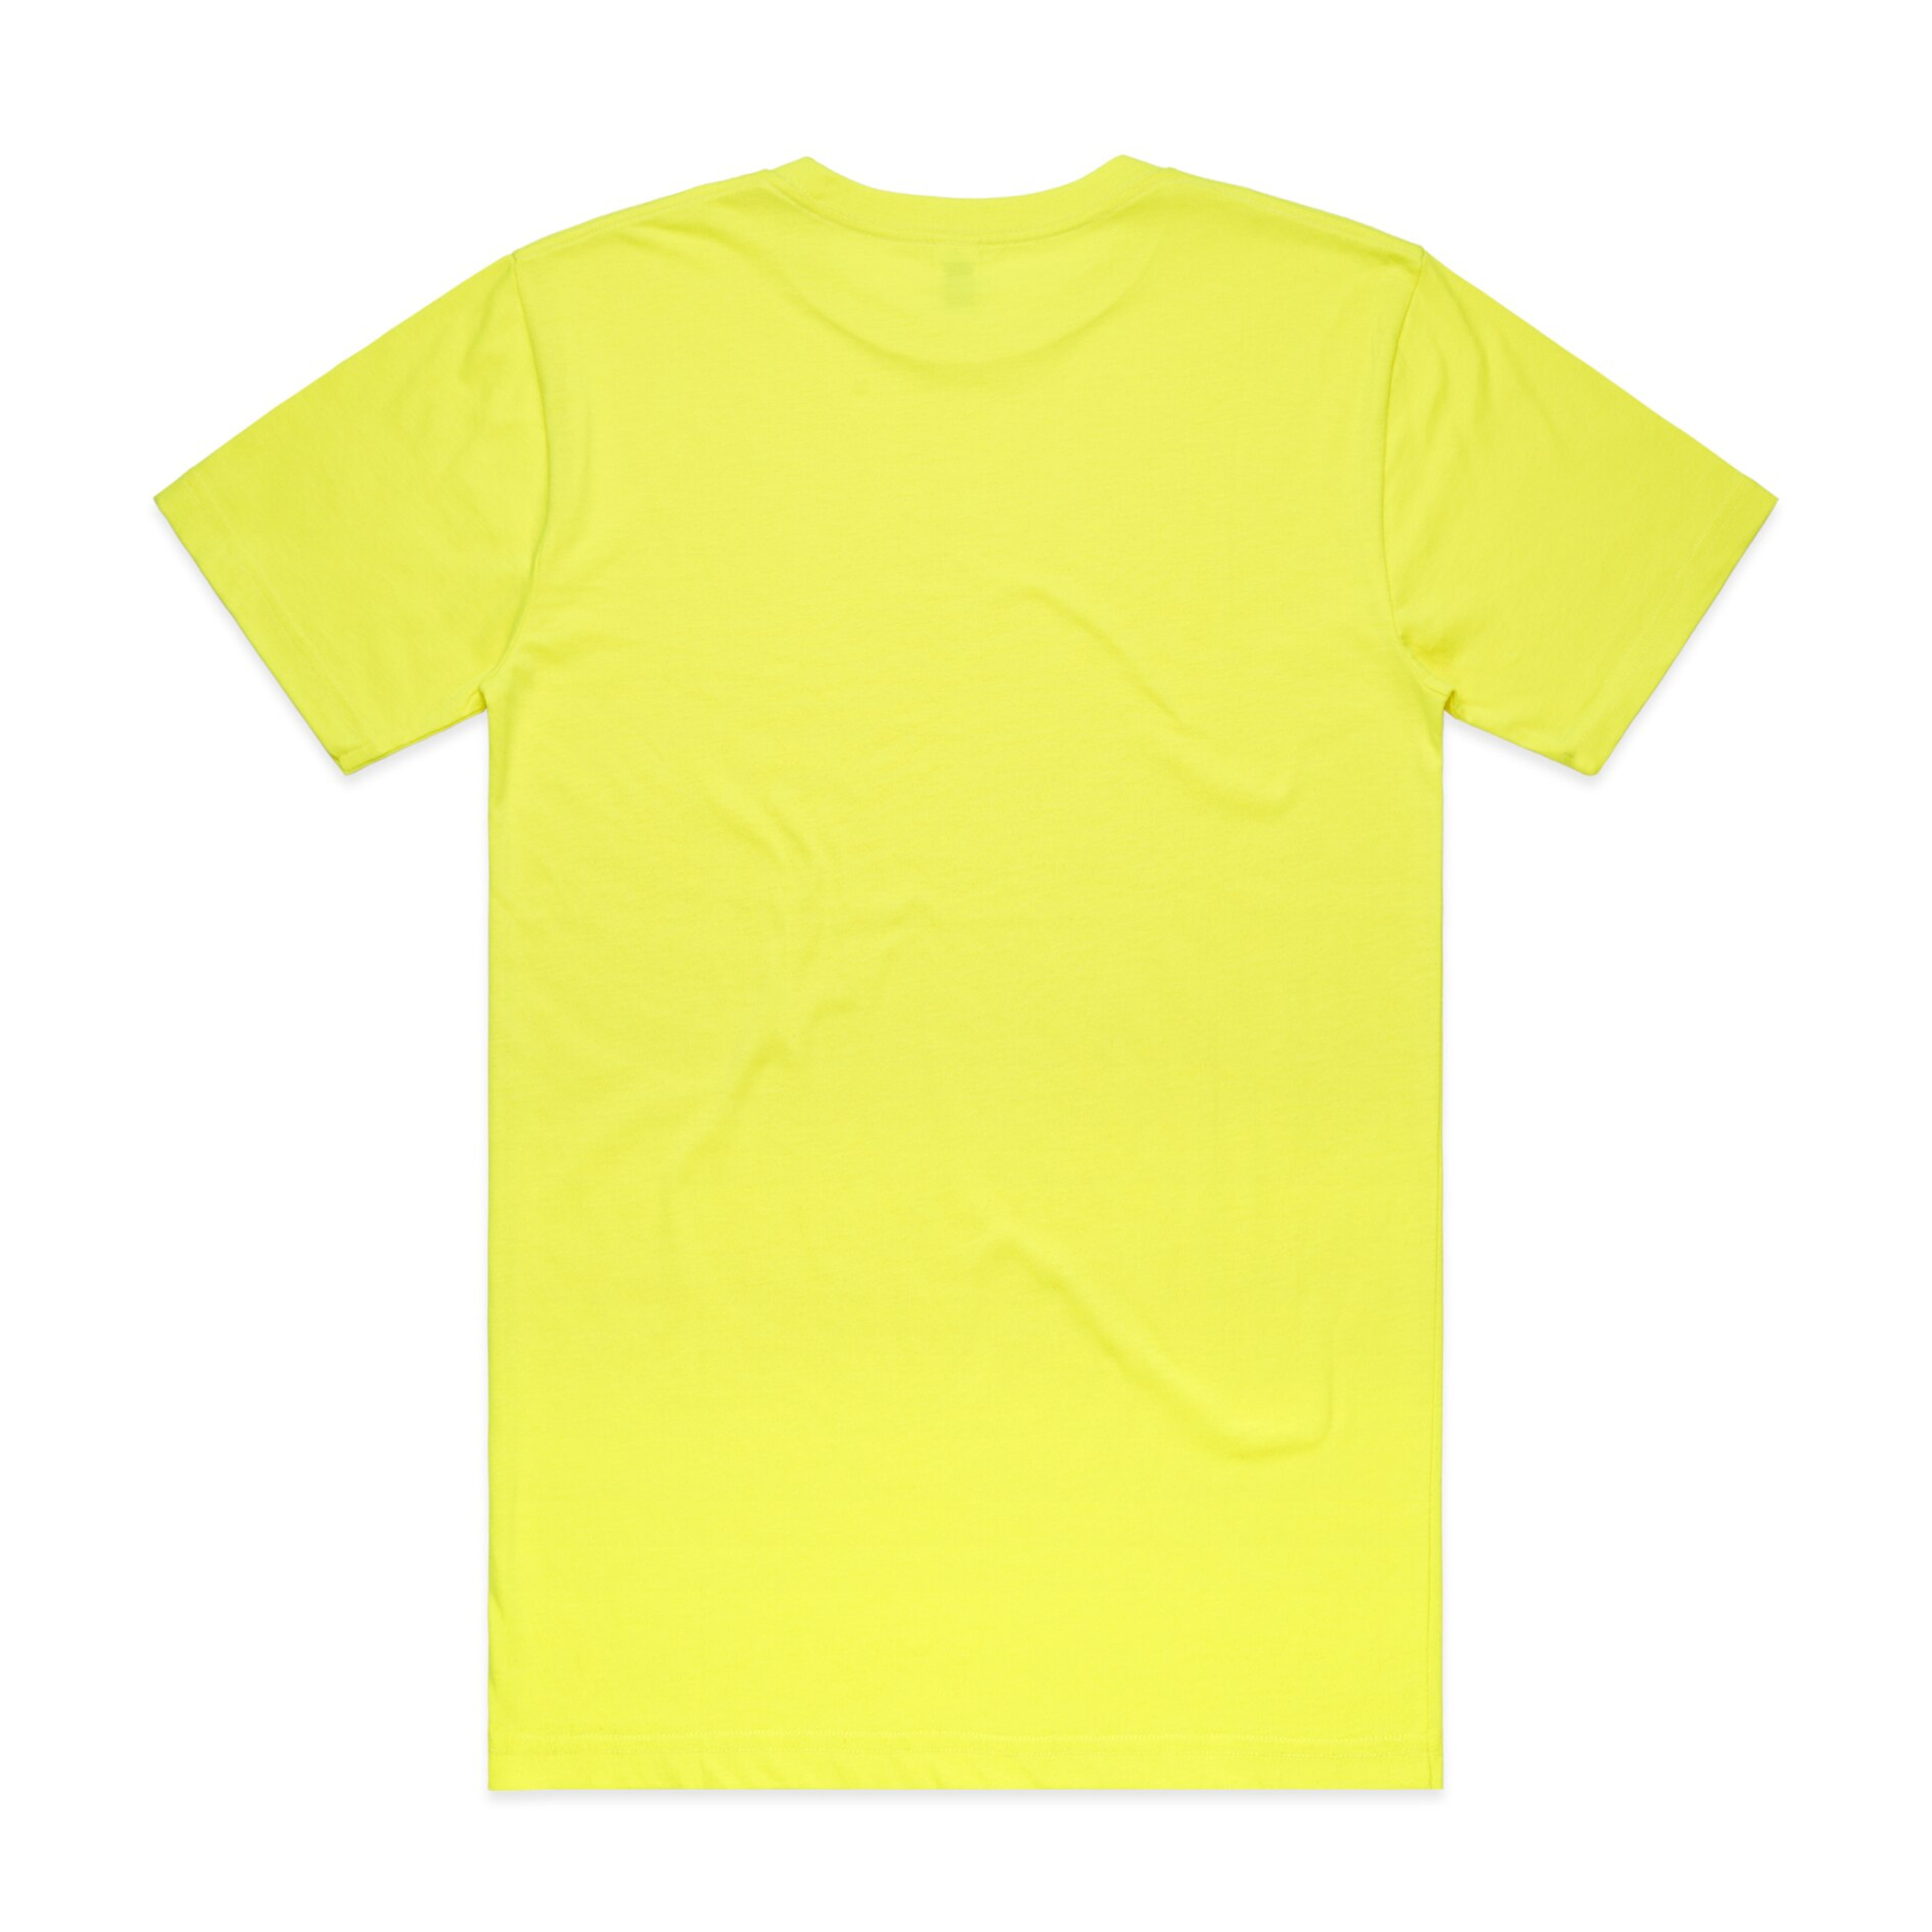 SAFETY YELLOW - BACK